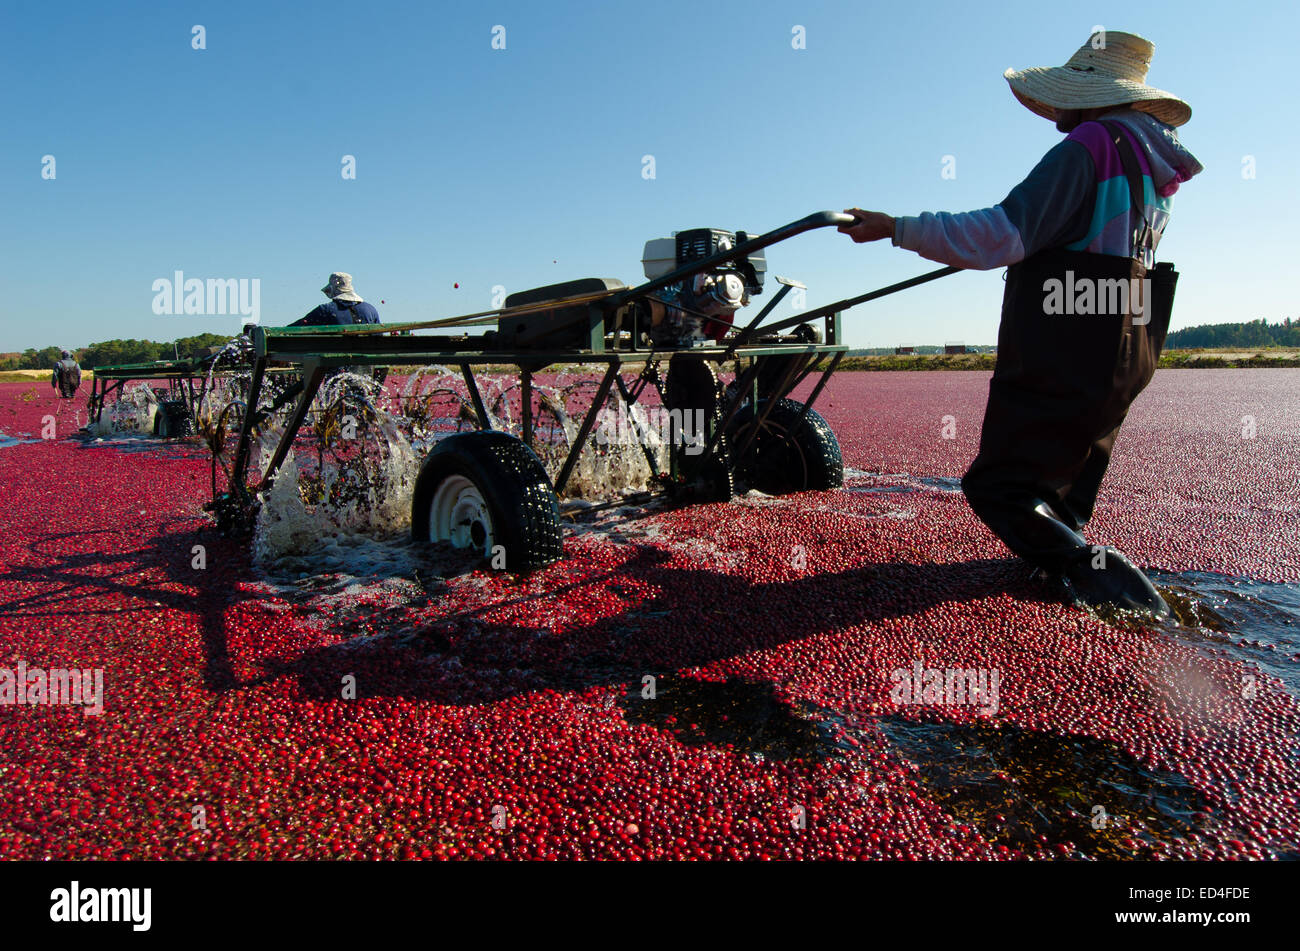 Water reels or 'egg beaters' remove the cranberries from their vines and allow for the water harvesting - Stock Image